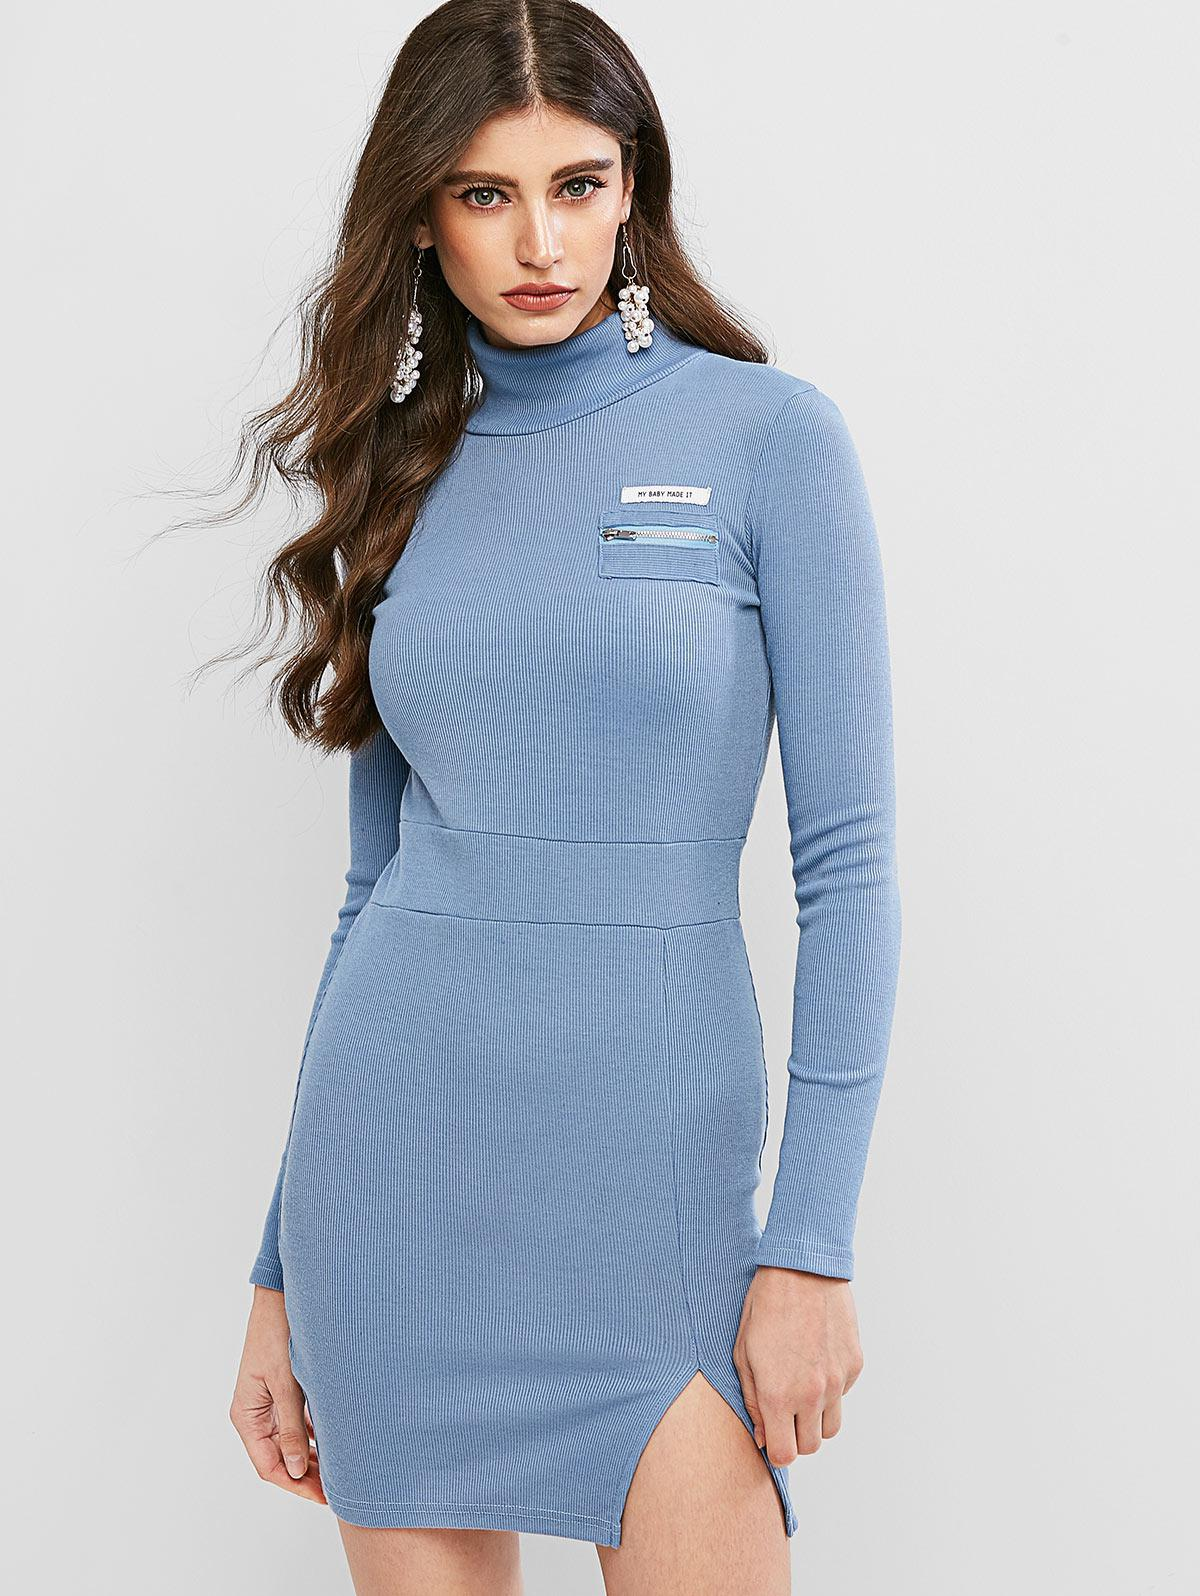 Letter Zip Embellished Slit Bodycon Dress